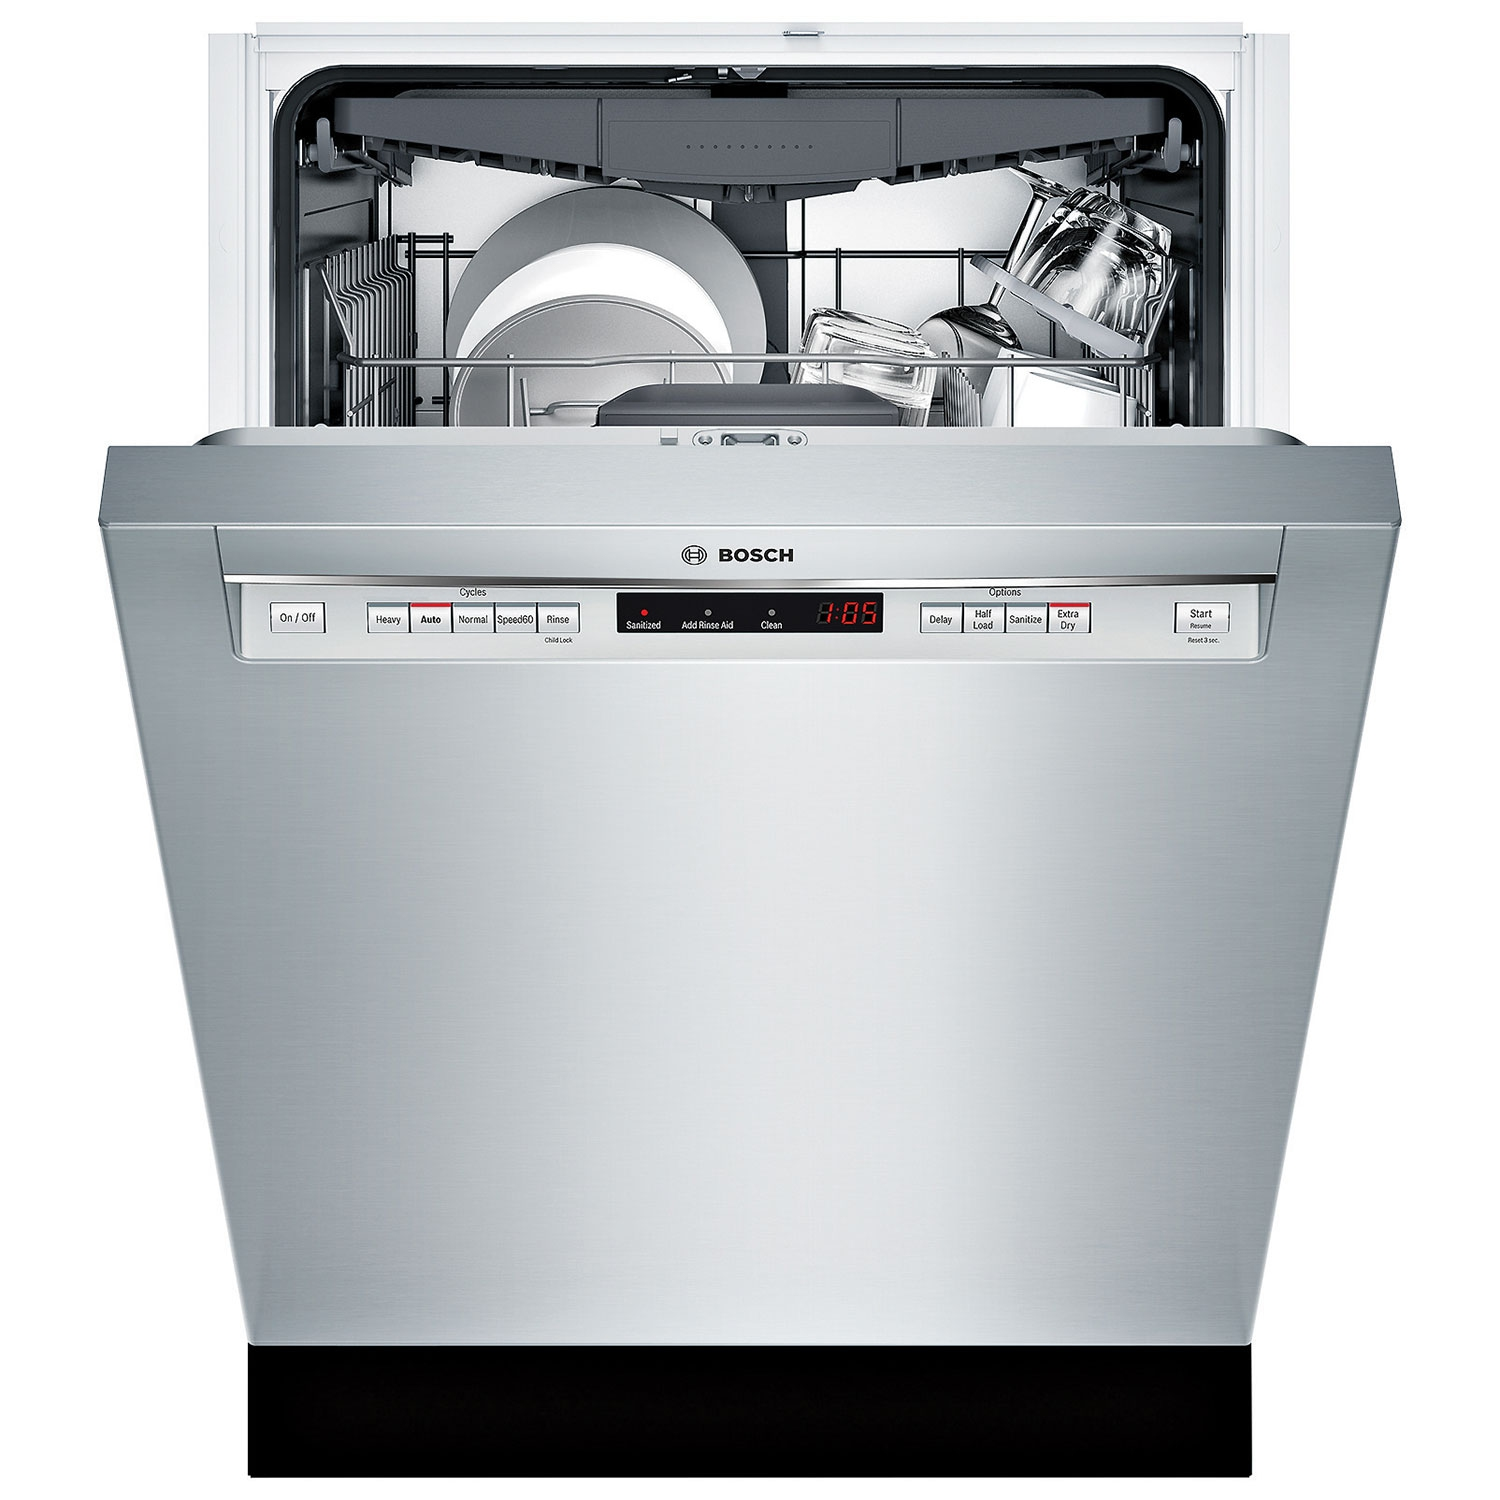 See Through Dishwasher Bosch 300 Series 24 44db Built In Dishwasher With Stainless Steel